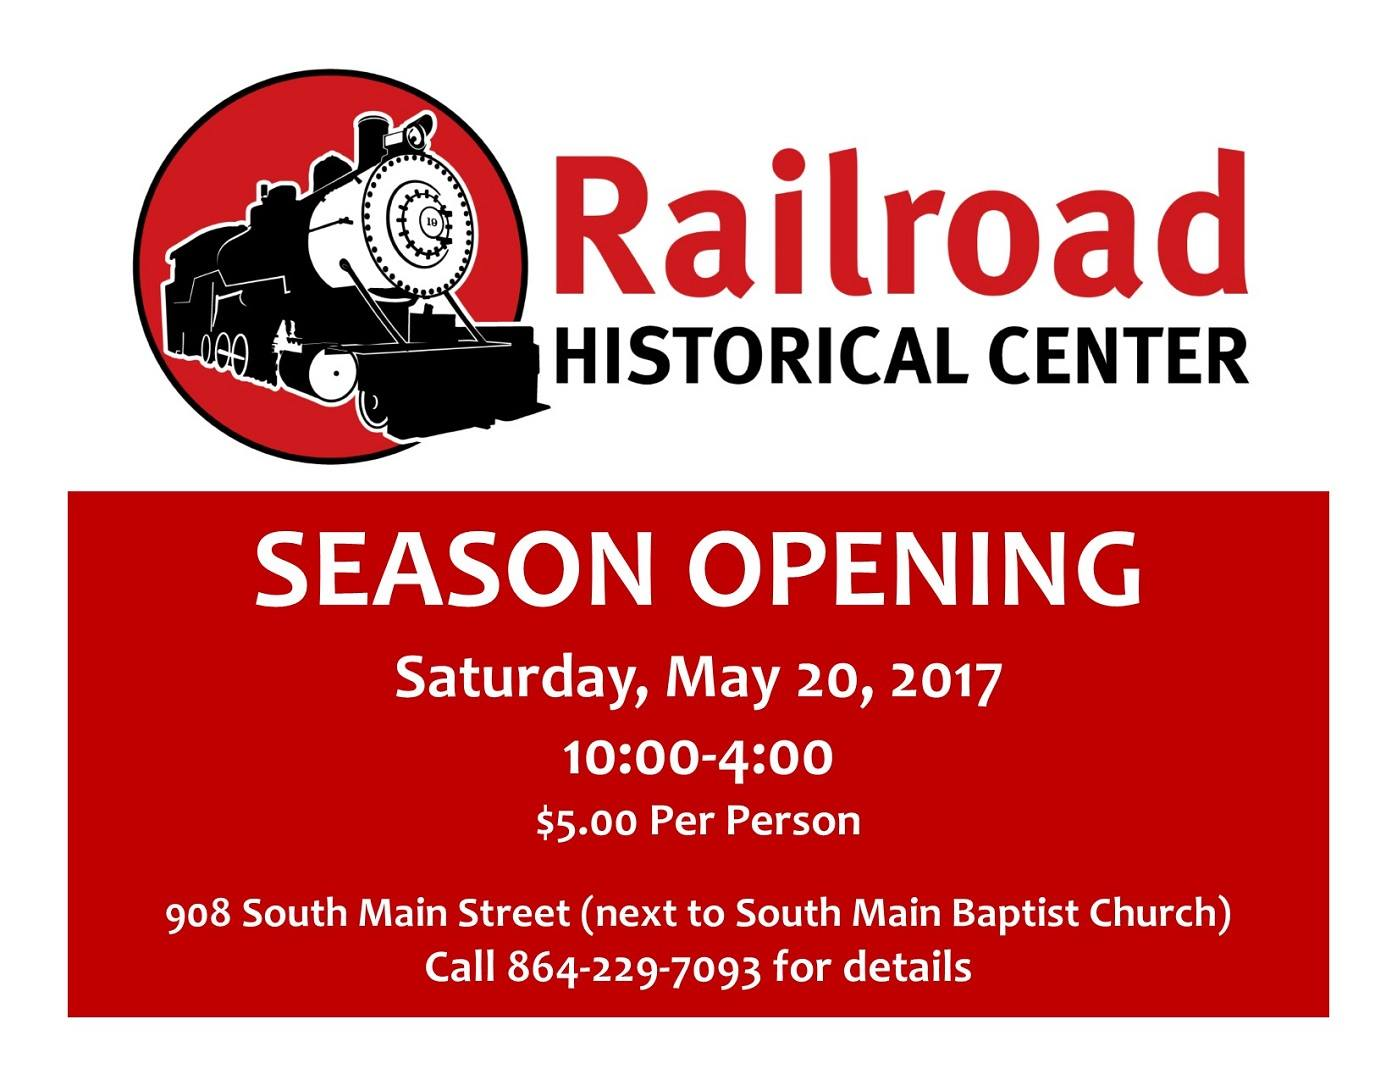 Railroad Historical Center Season Opening